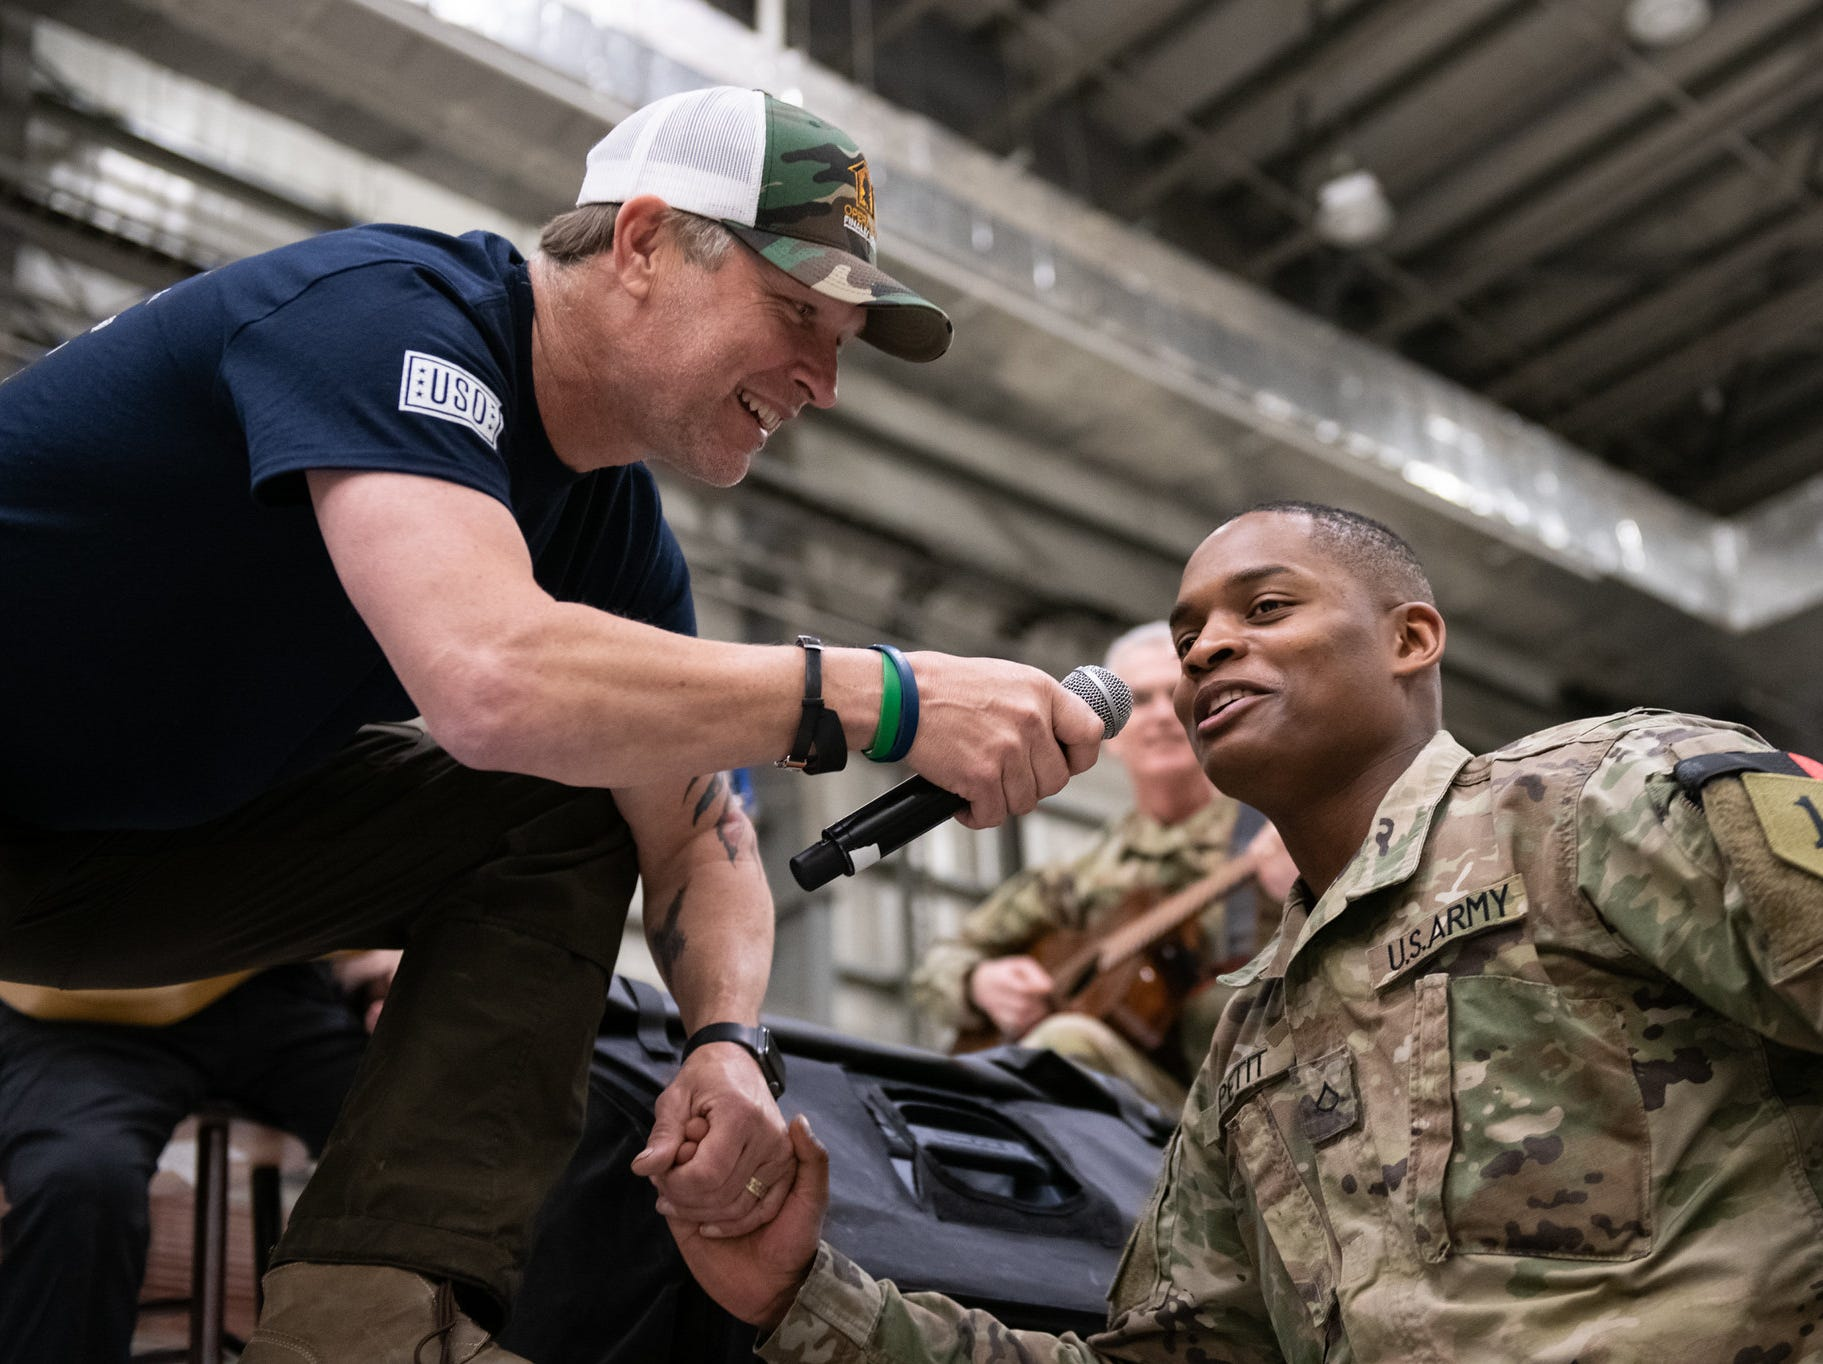 Entertainers and athletes take questions and interact with the audience during a USO Show at Bagram Airfield, Afghanistan; the second stop on the annual Vice Chairman's USO Tour, March 31, 2019. Pictured, left, is country musician and Dickson resident Craig Morgan.